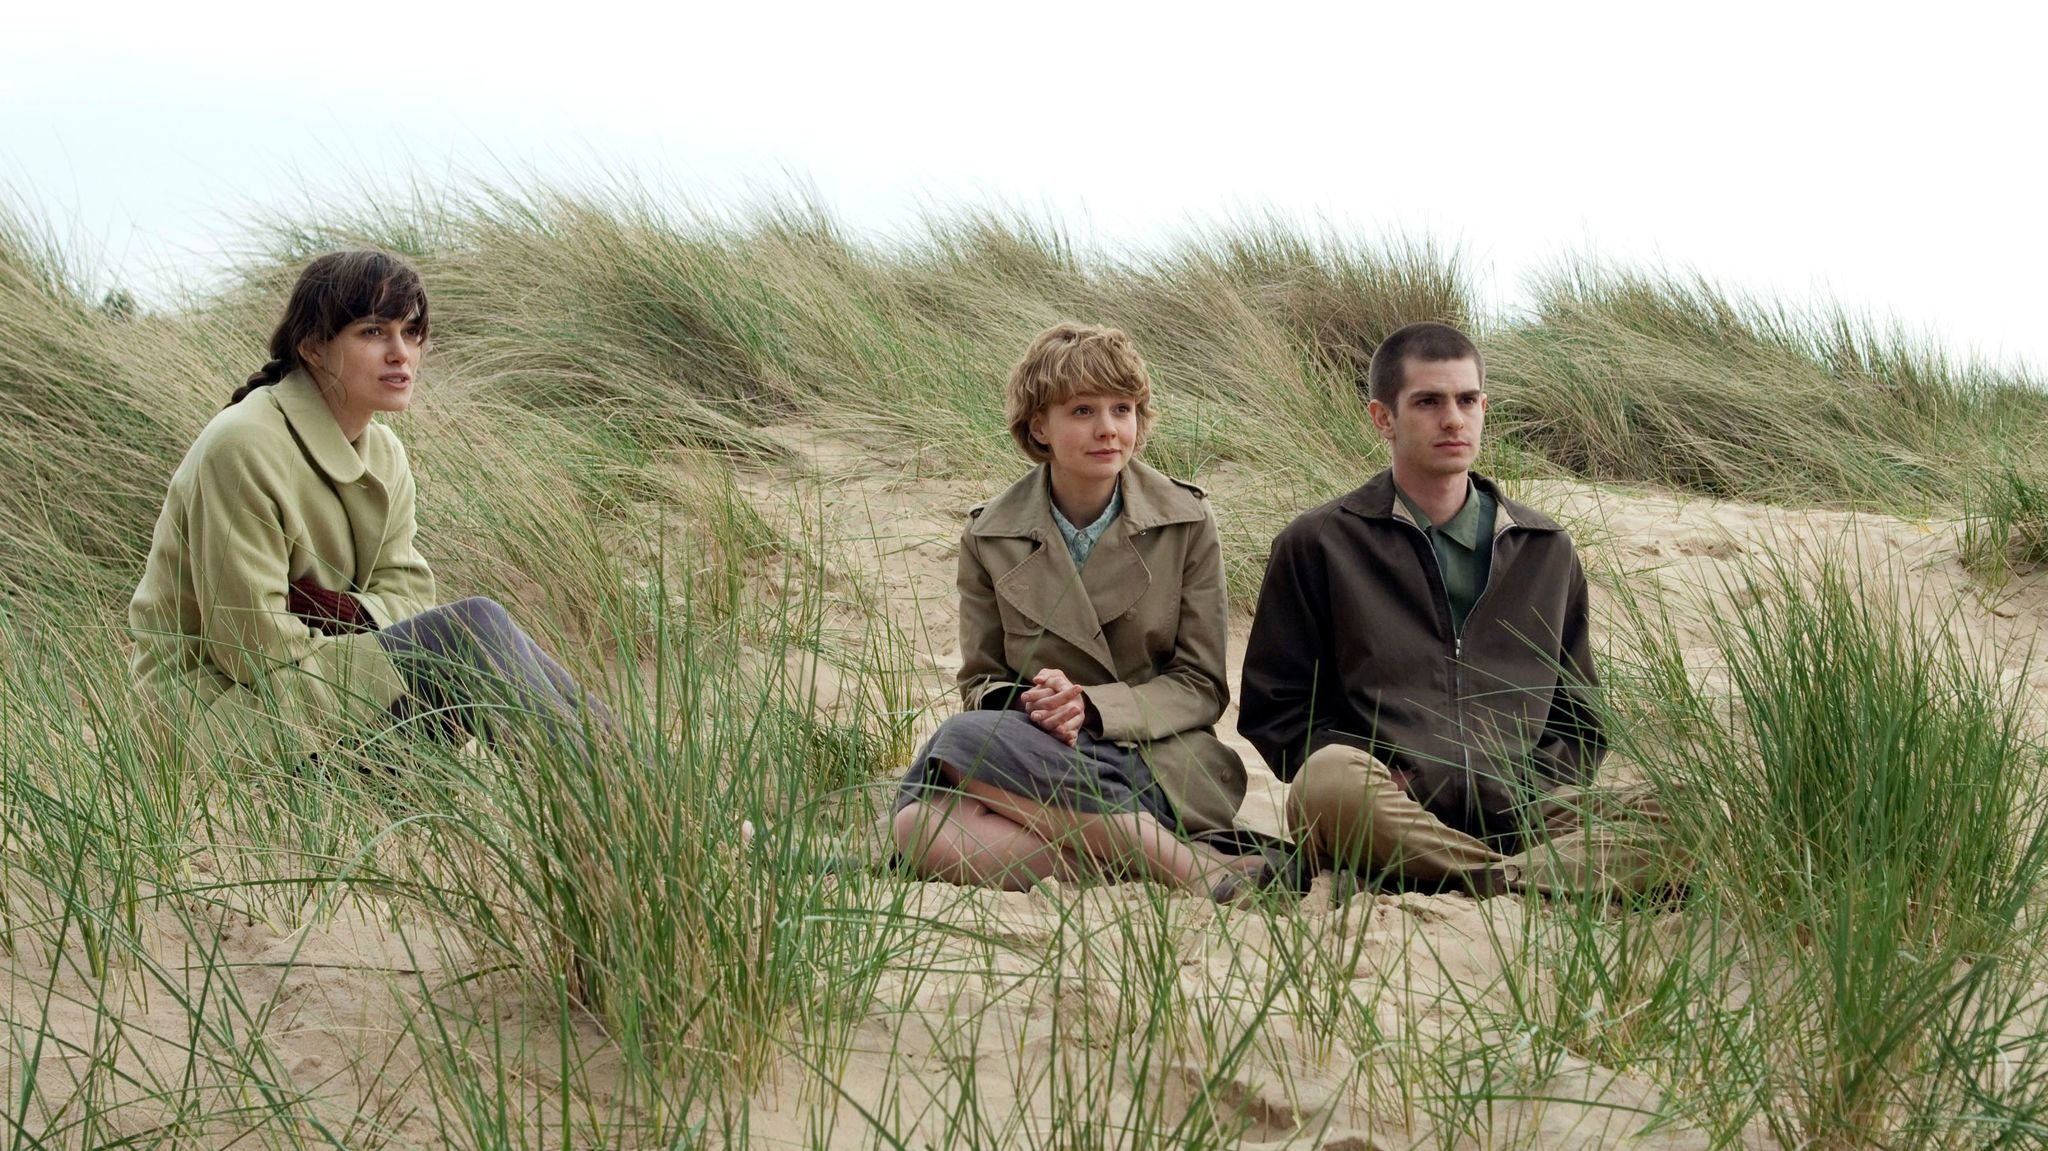 L-R: Keira Knightley, Carey Mulligan and Andrew Garfield in the movie 'Never Let Me Go.' (Alex Bailey / Fox Searchlight)